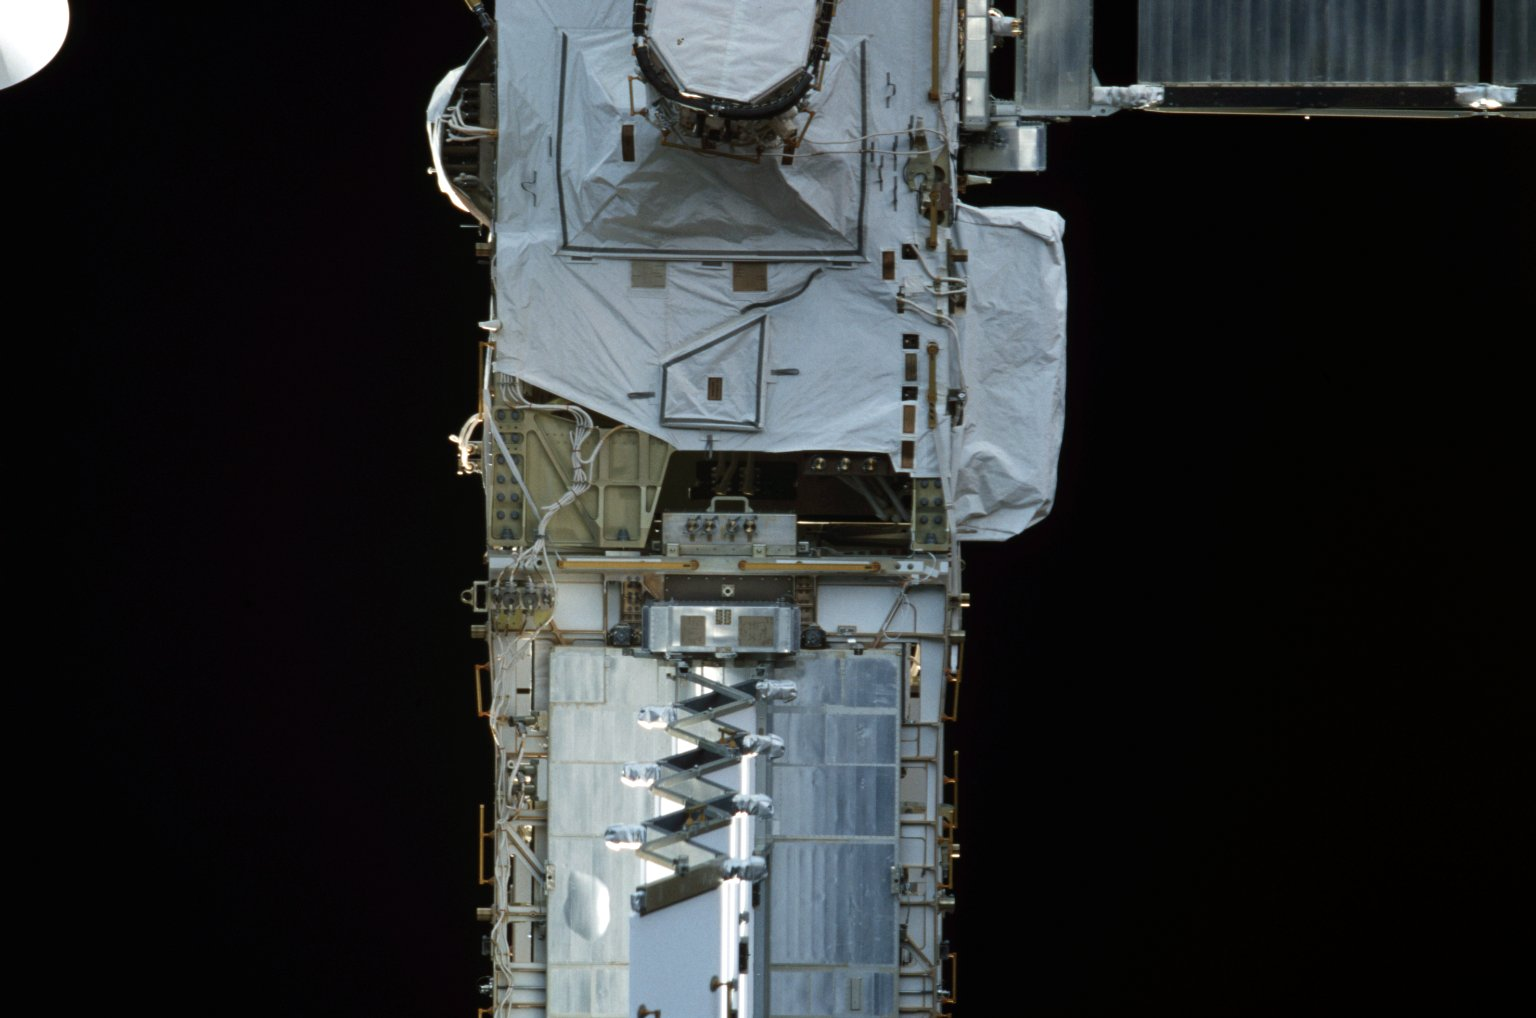 View of the EAS and EETCS Radiator for the P6 Truss taken during STS-110